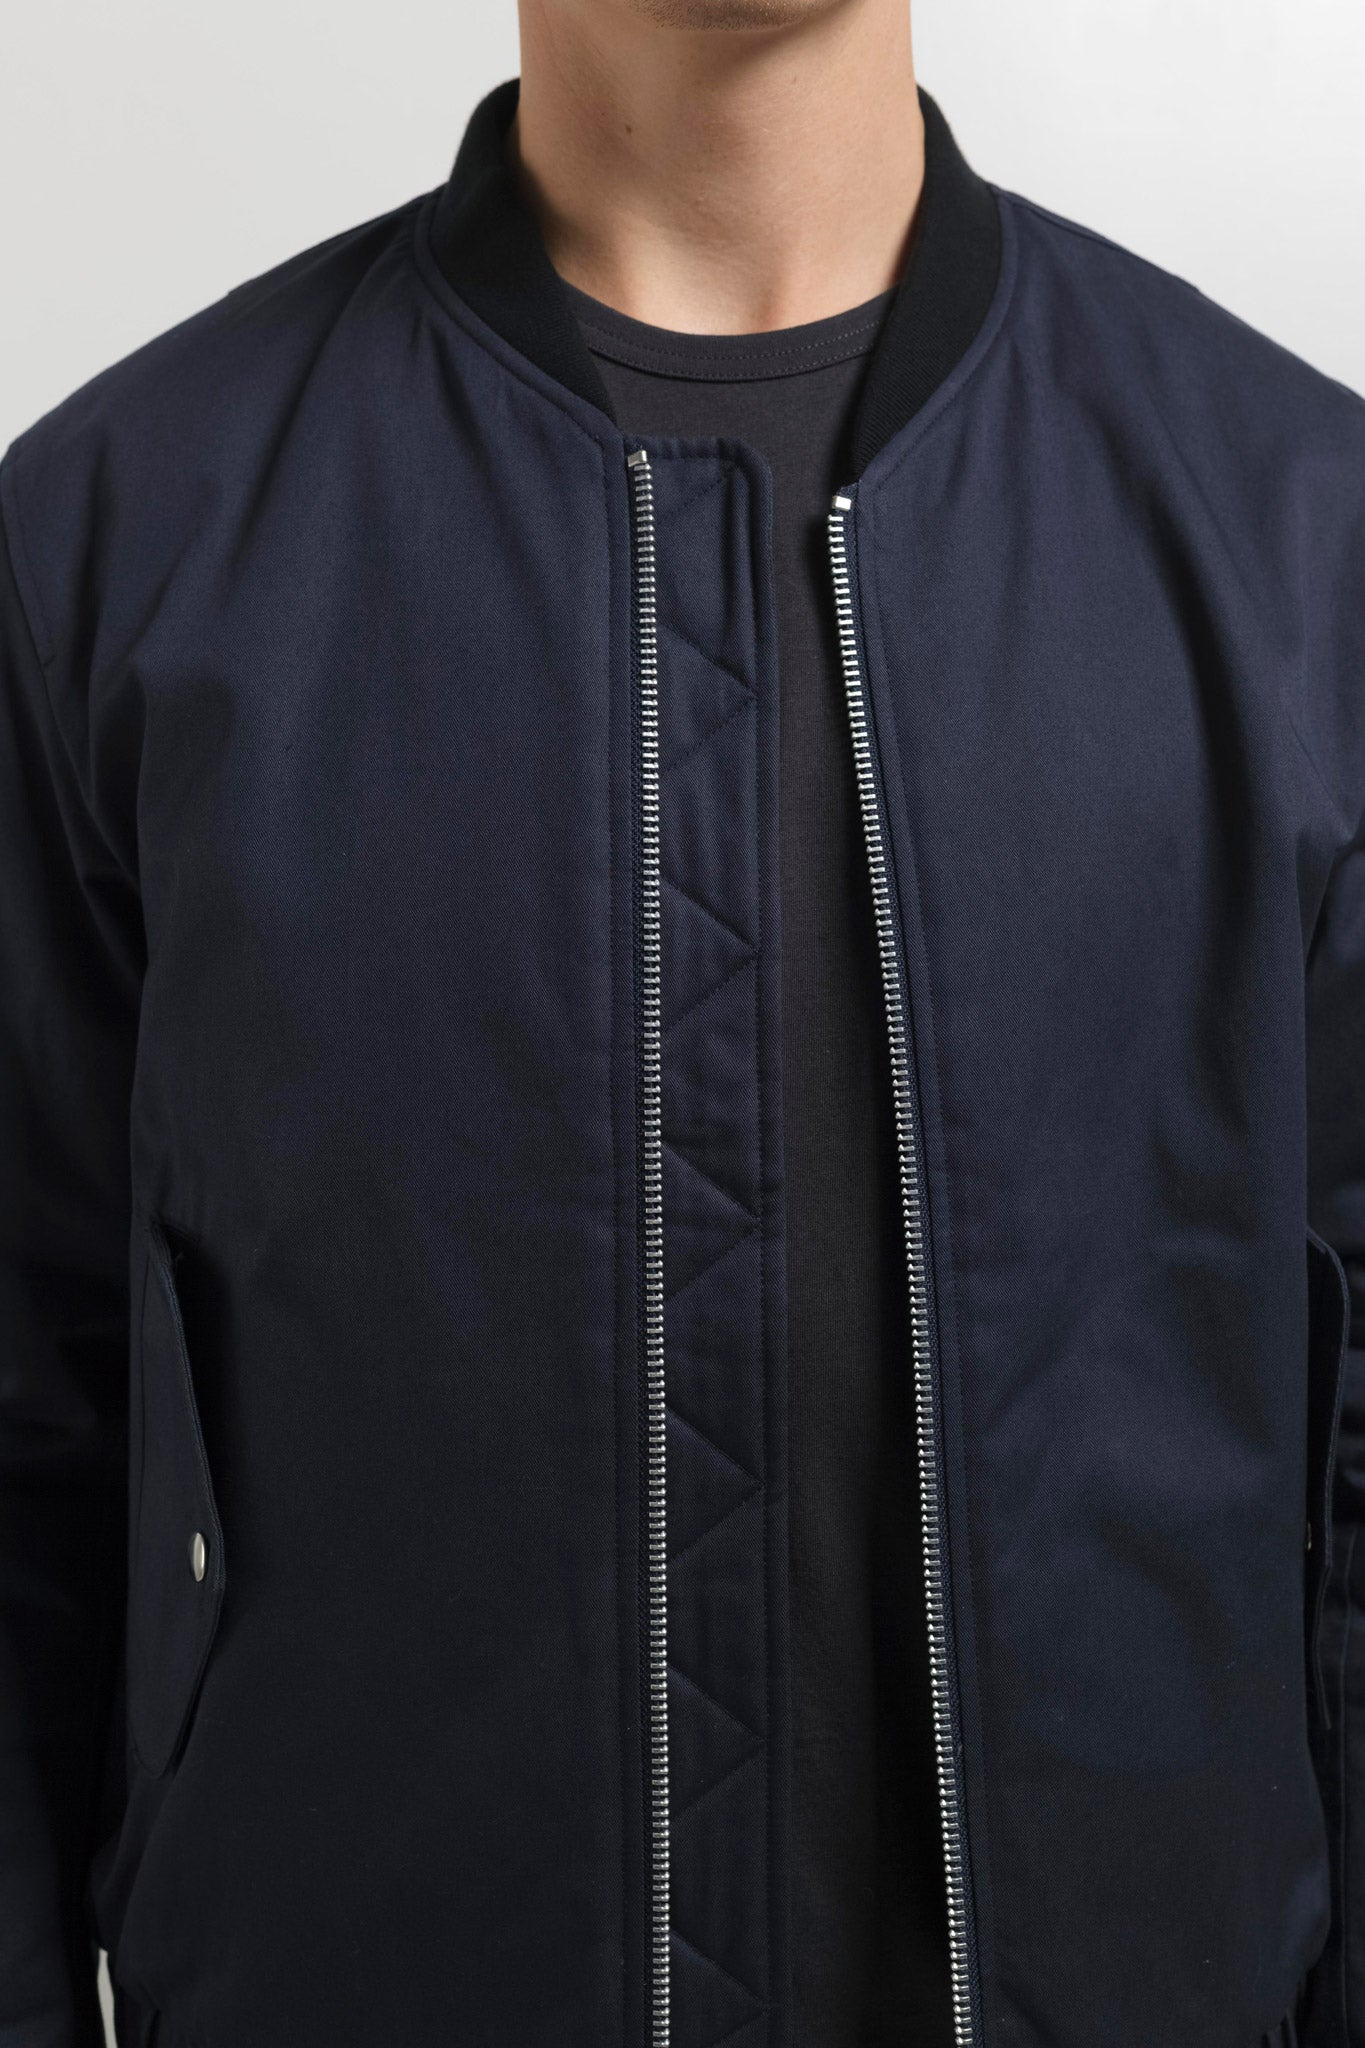 MA-1 Jacket in Navy